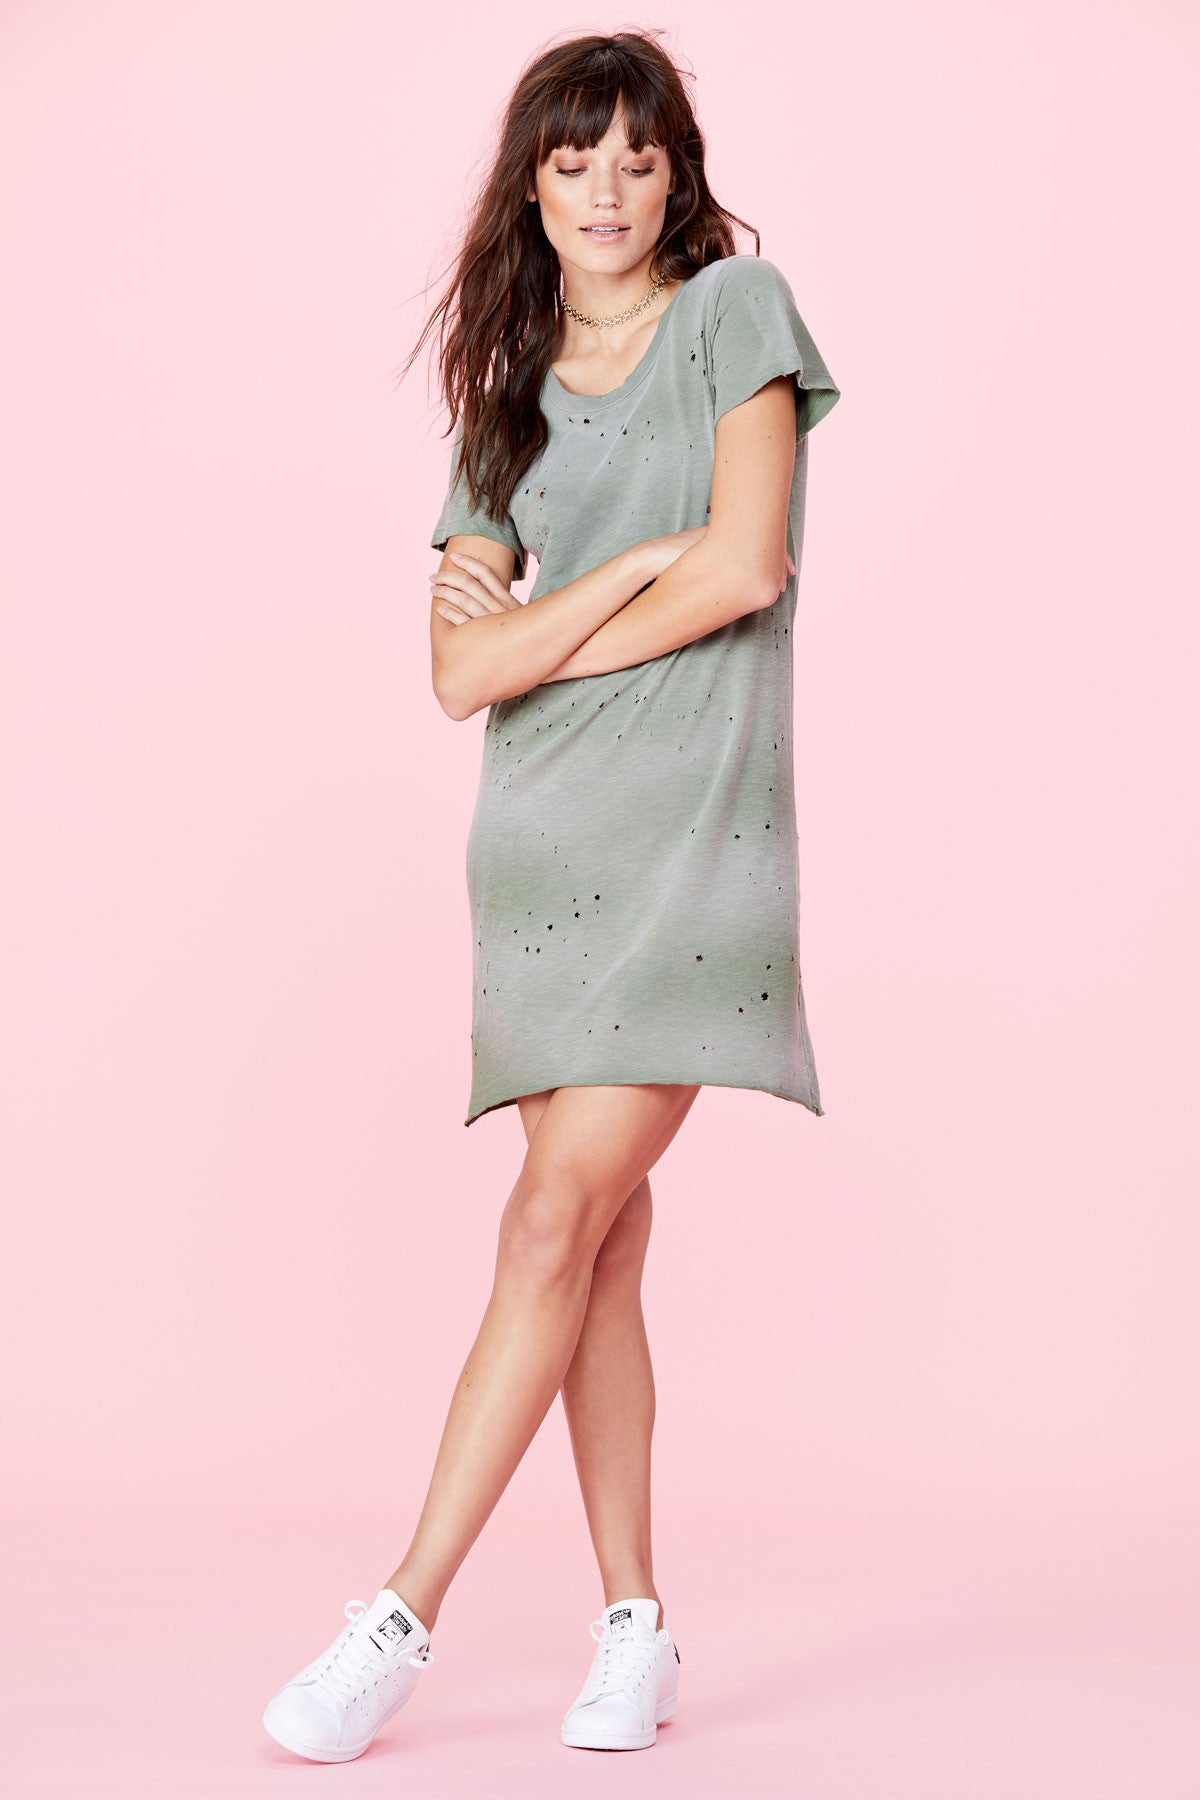 Destroyed Tee Dress - Military Green Potassium